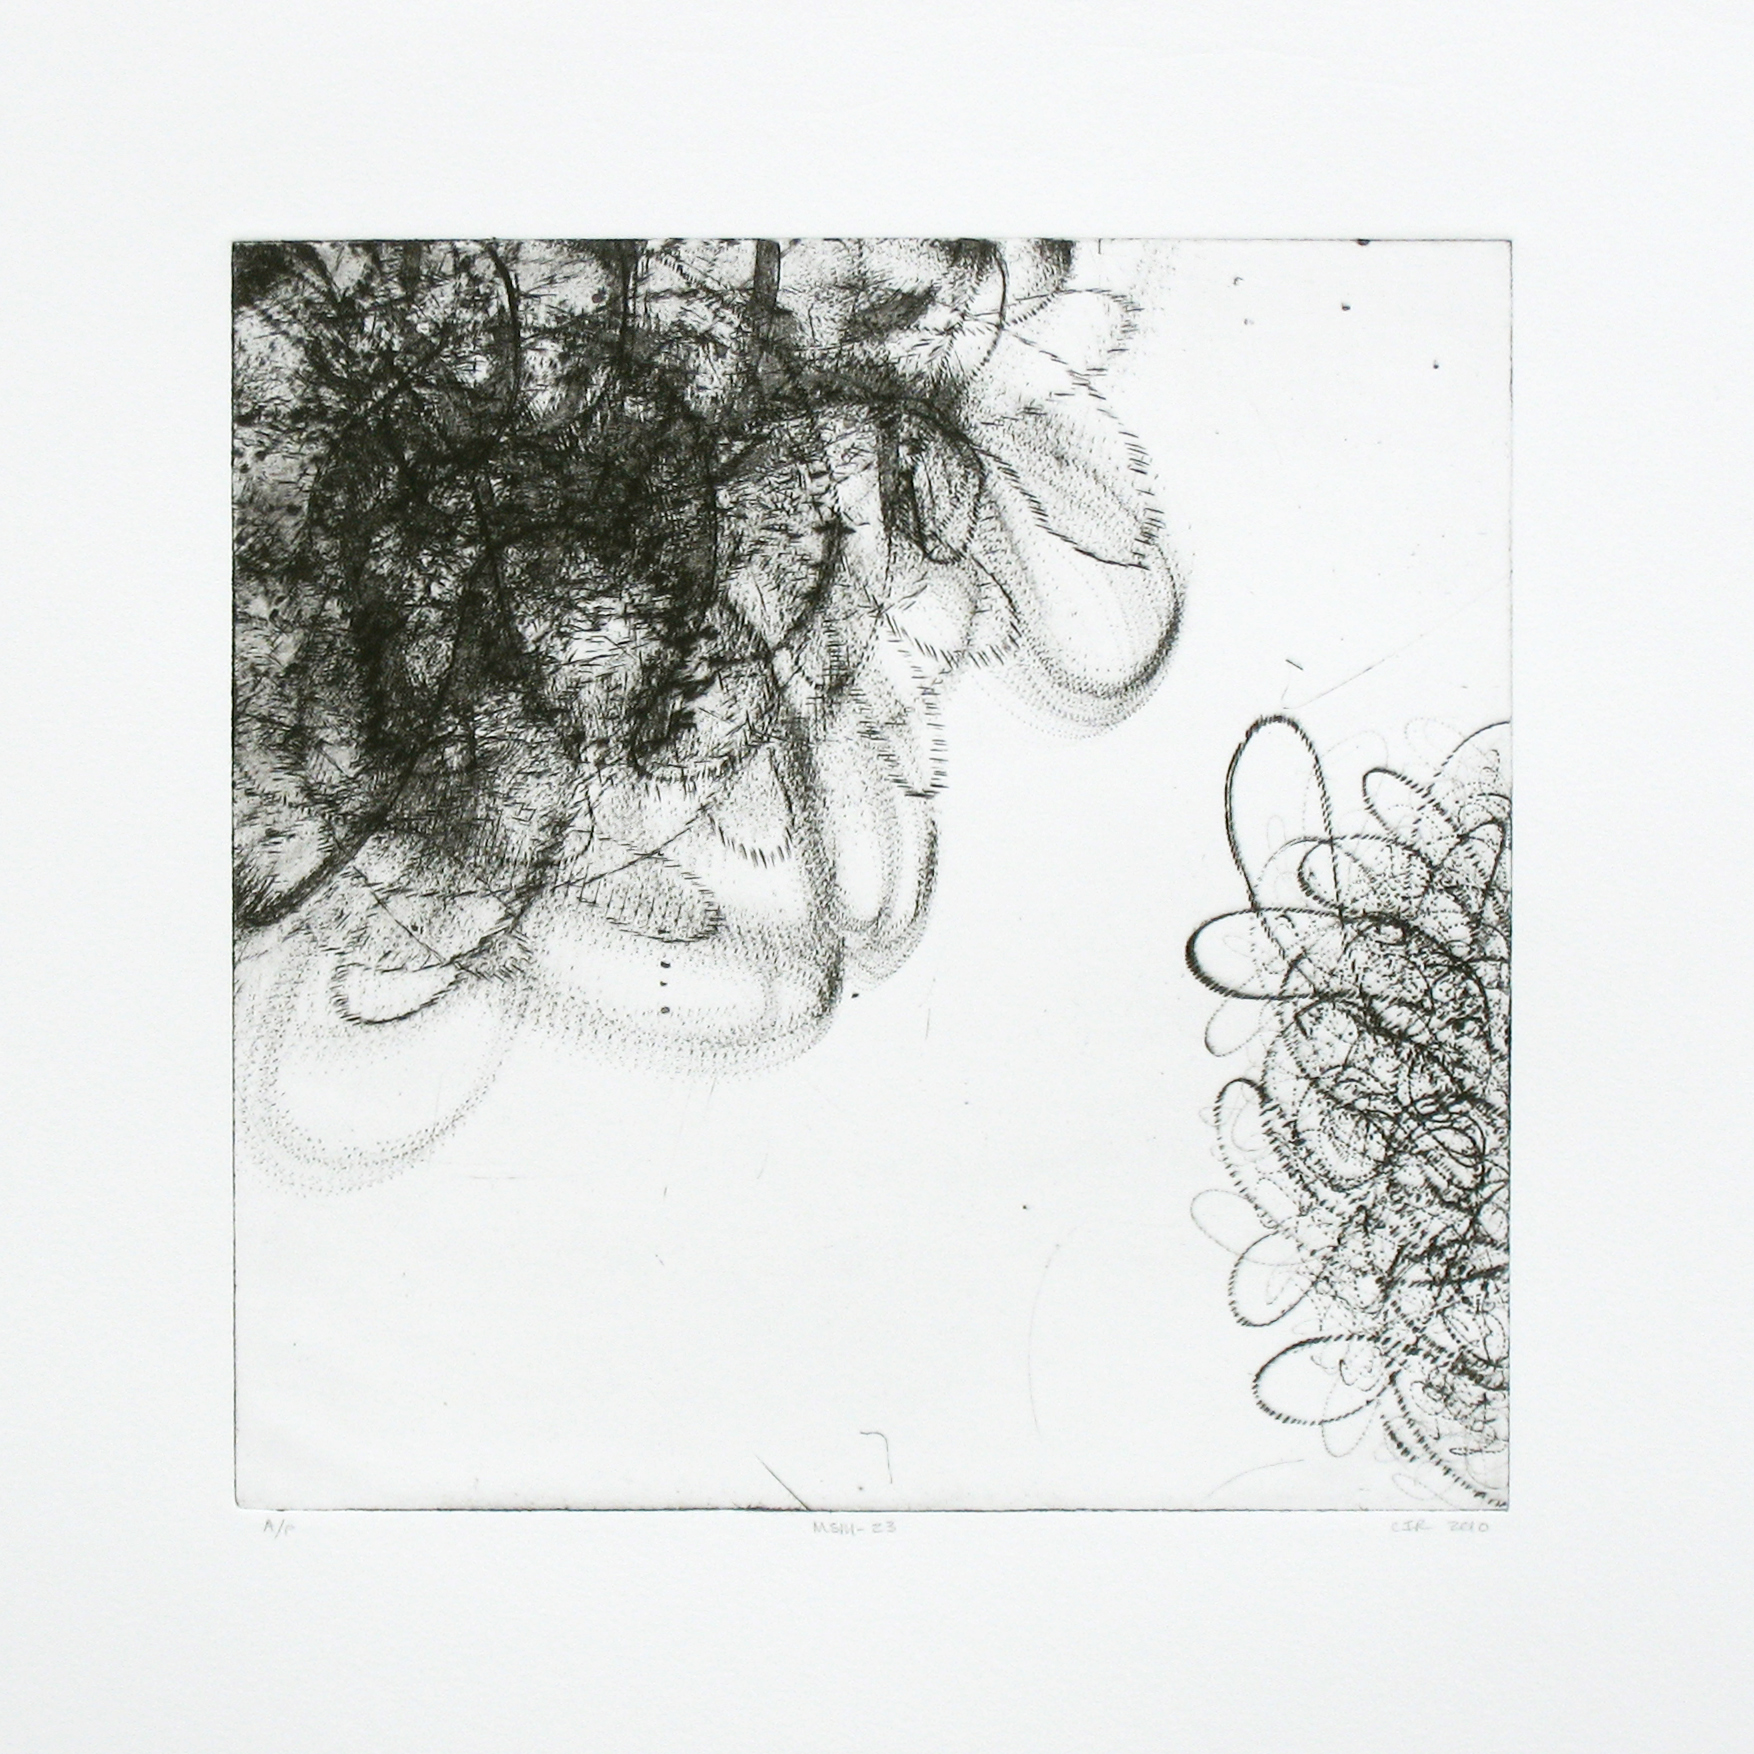 MSM-23 (B&w)  Intaglio: etching and drypoint  12 x 12 in.